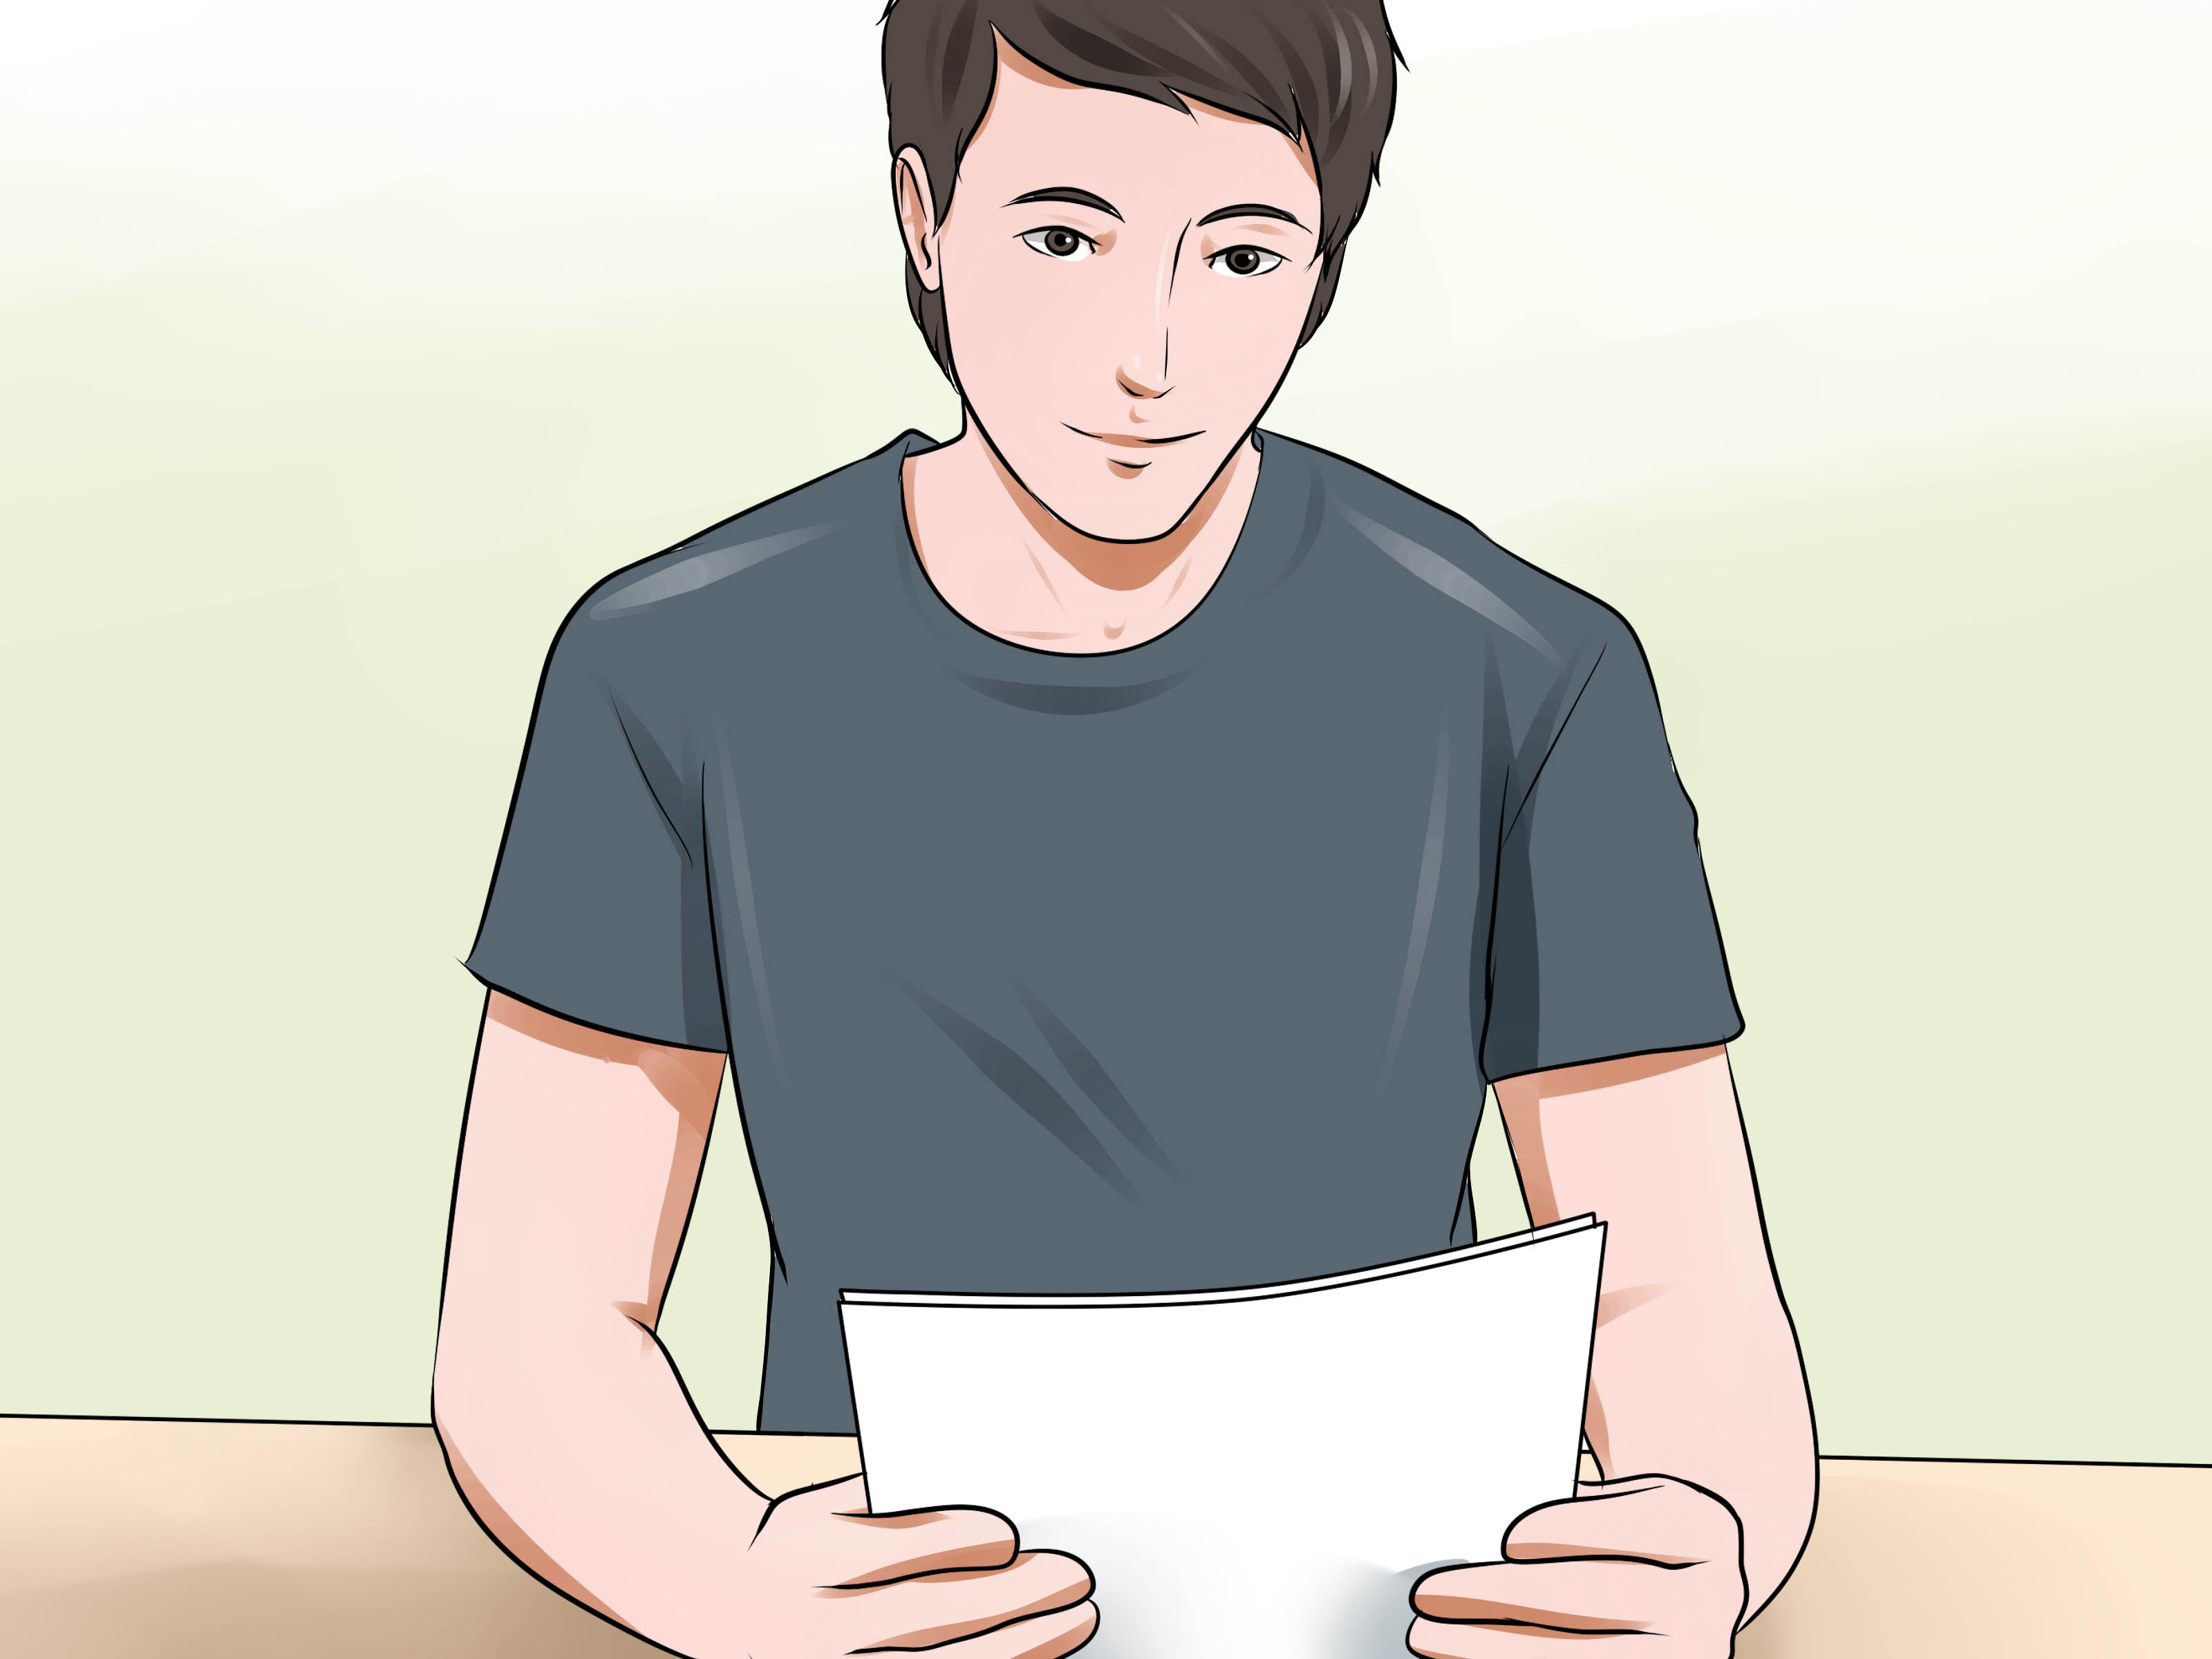 how to write a 5 page essay fast